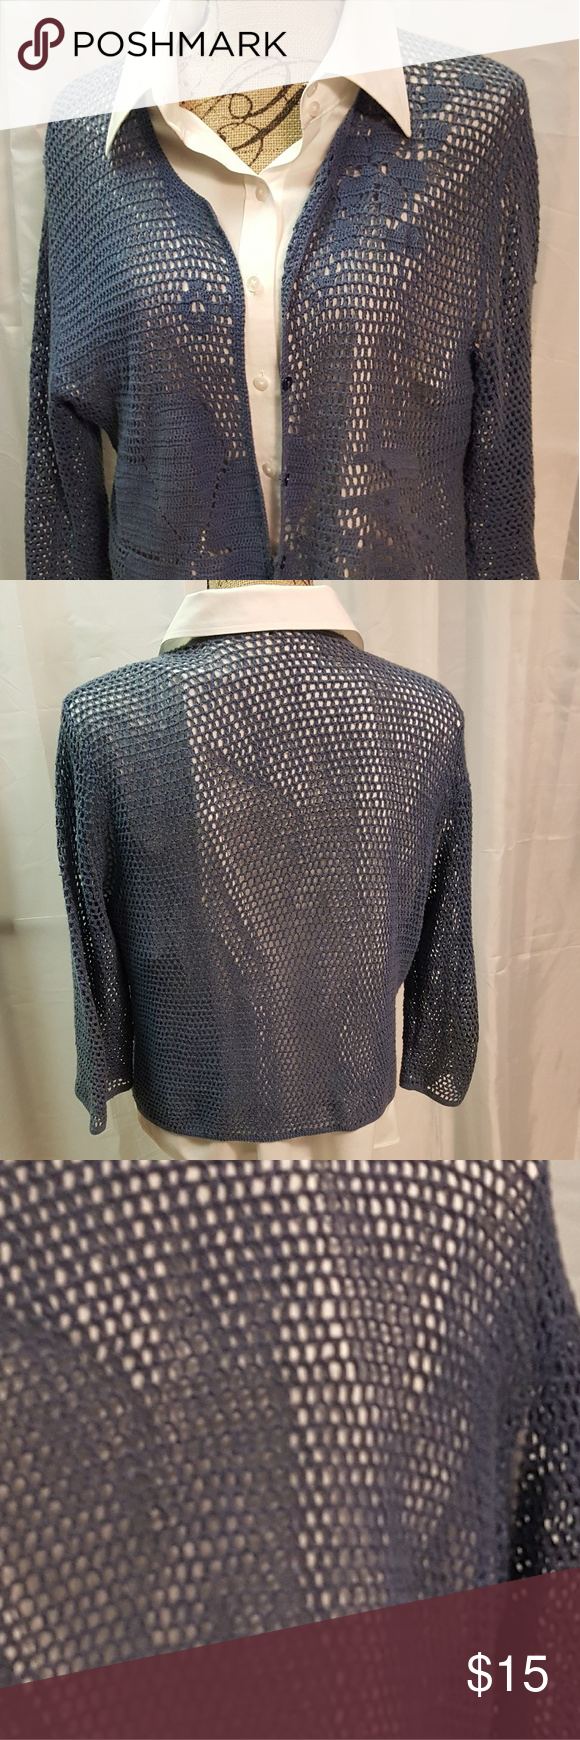 *NEW LISTING* Knitted Cover Up Sweater Open knit, Waist length @ 20 inches from seam to shoulder with 3/4 sleeves @17 inchs. Similar to Slate blue. 100% Cotton,  lightweight, small buttons so it can be worn closed or open. Wonderful to pull on over a sleeveless top for a sunset supper. Sweaters Cardigans